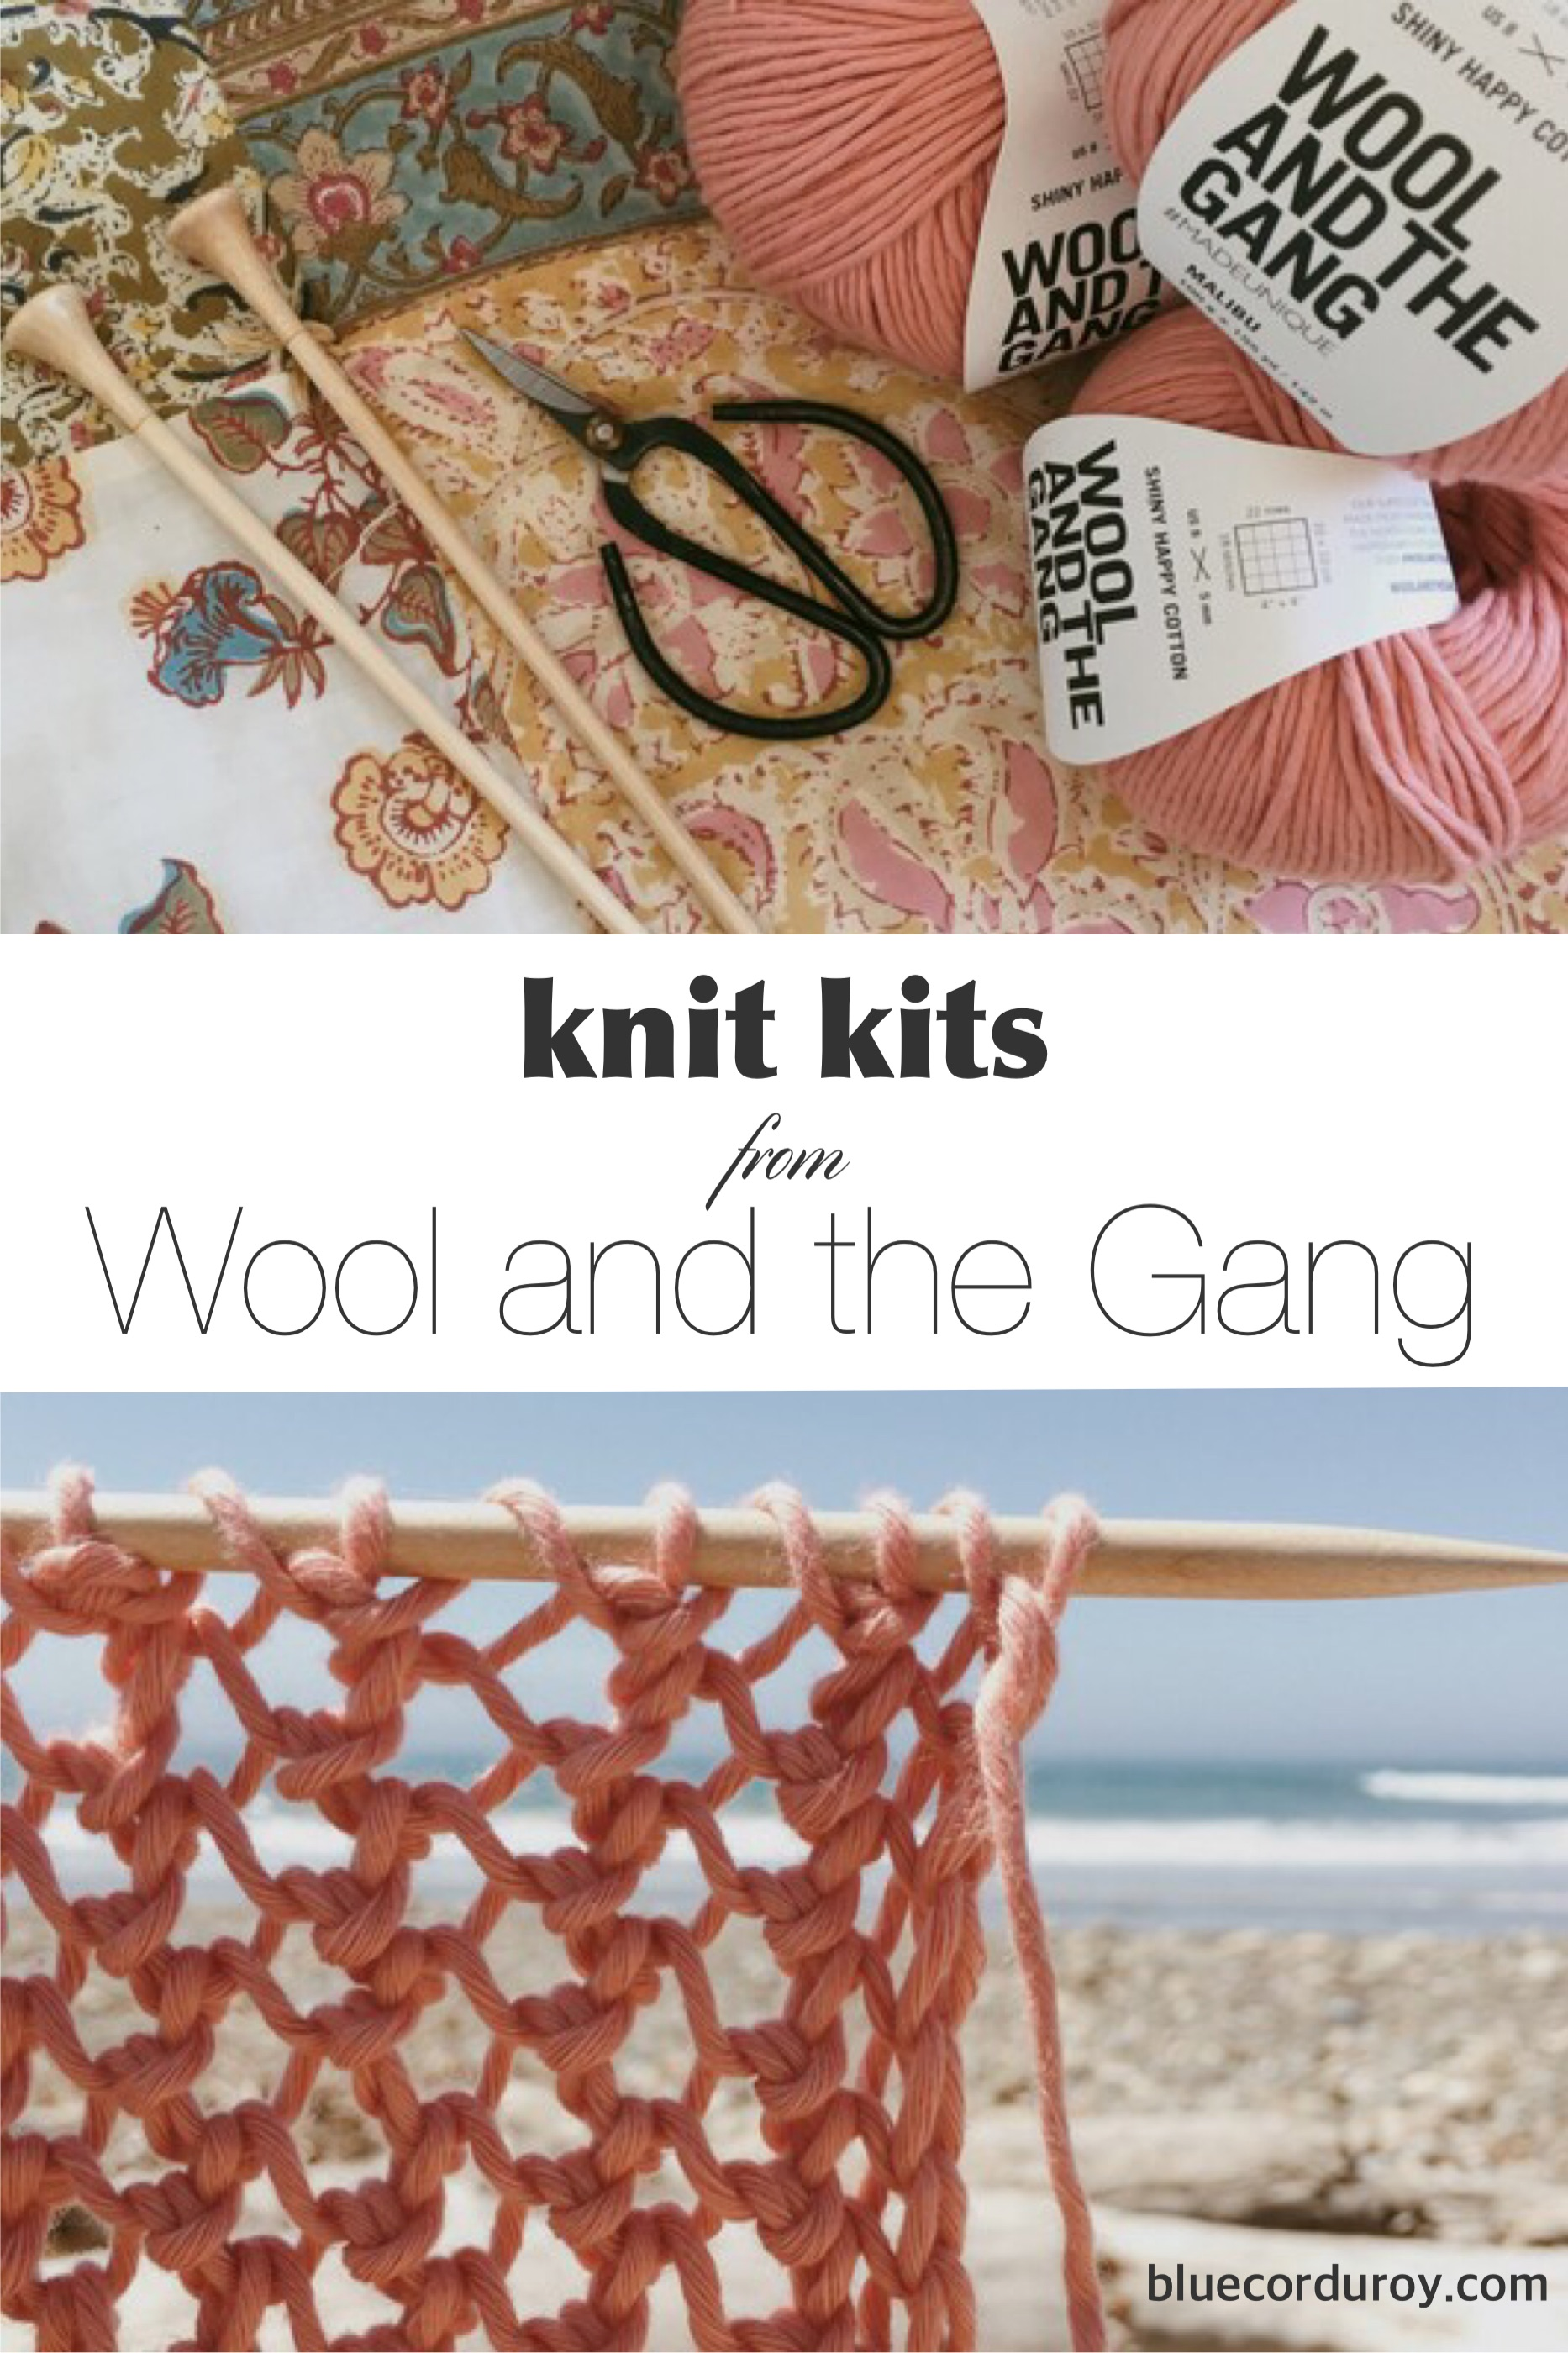 Knit Kits from Wool and the Gang. These have lots of enjoyment with little frustration.